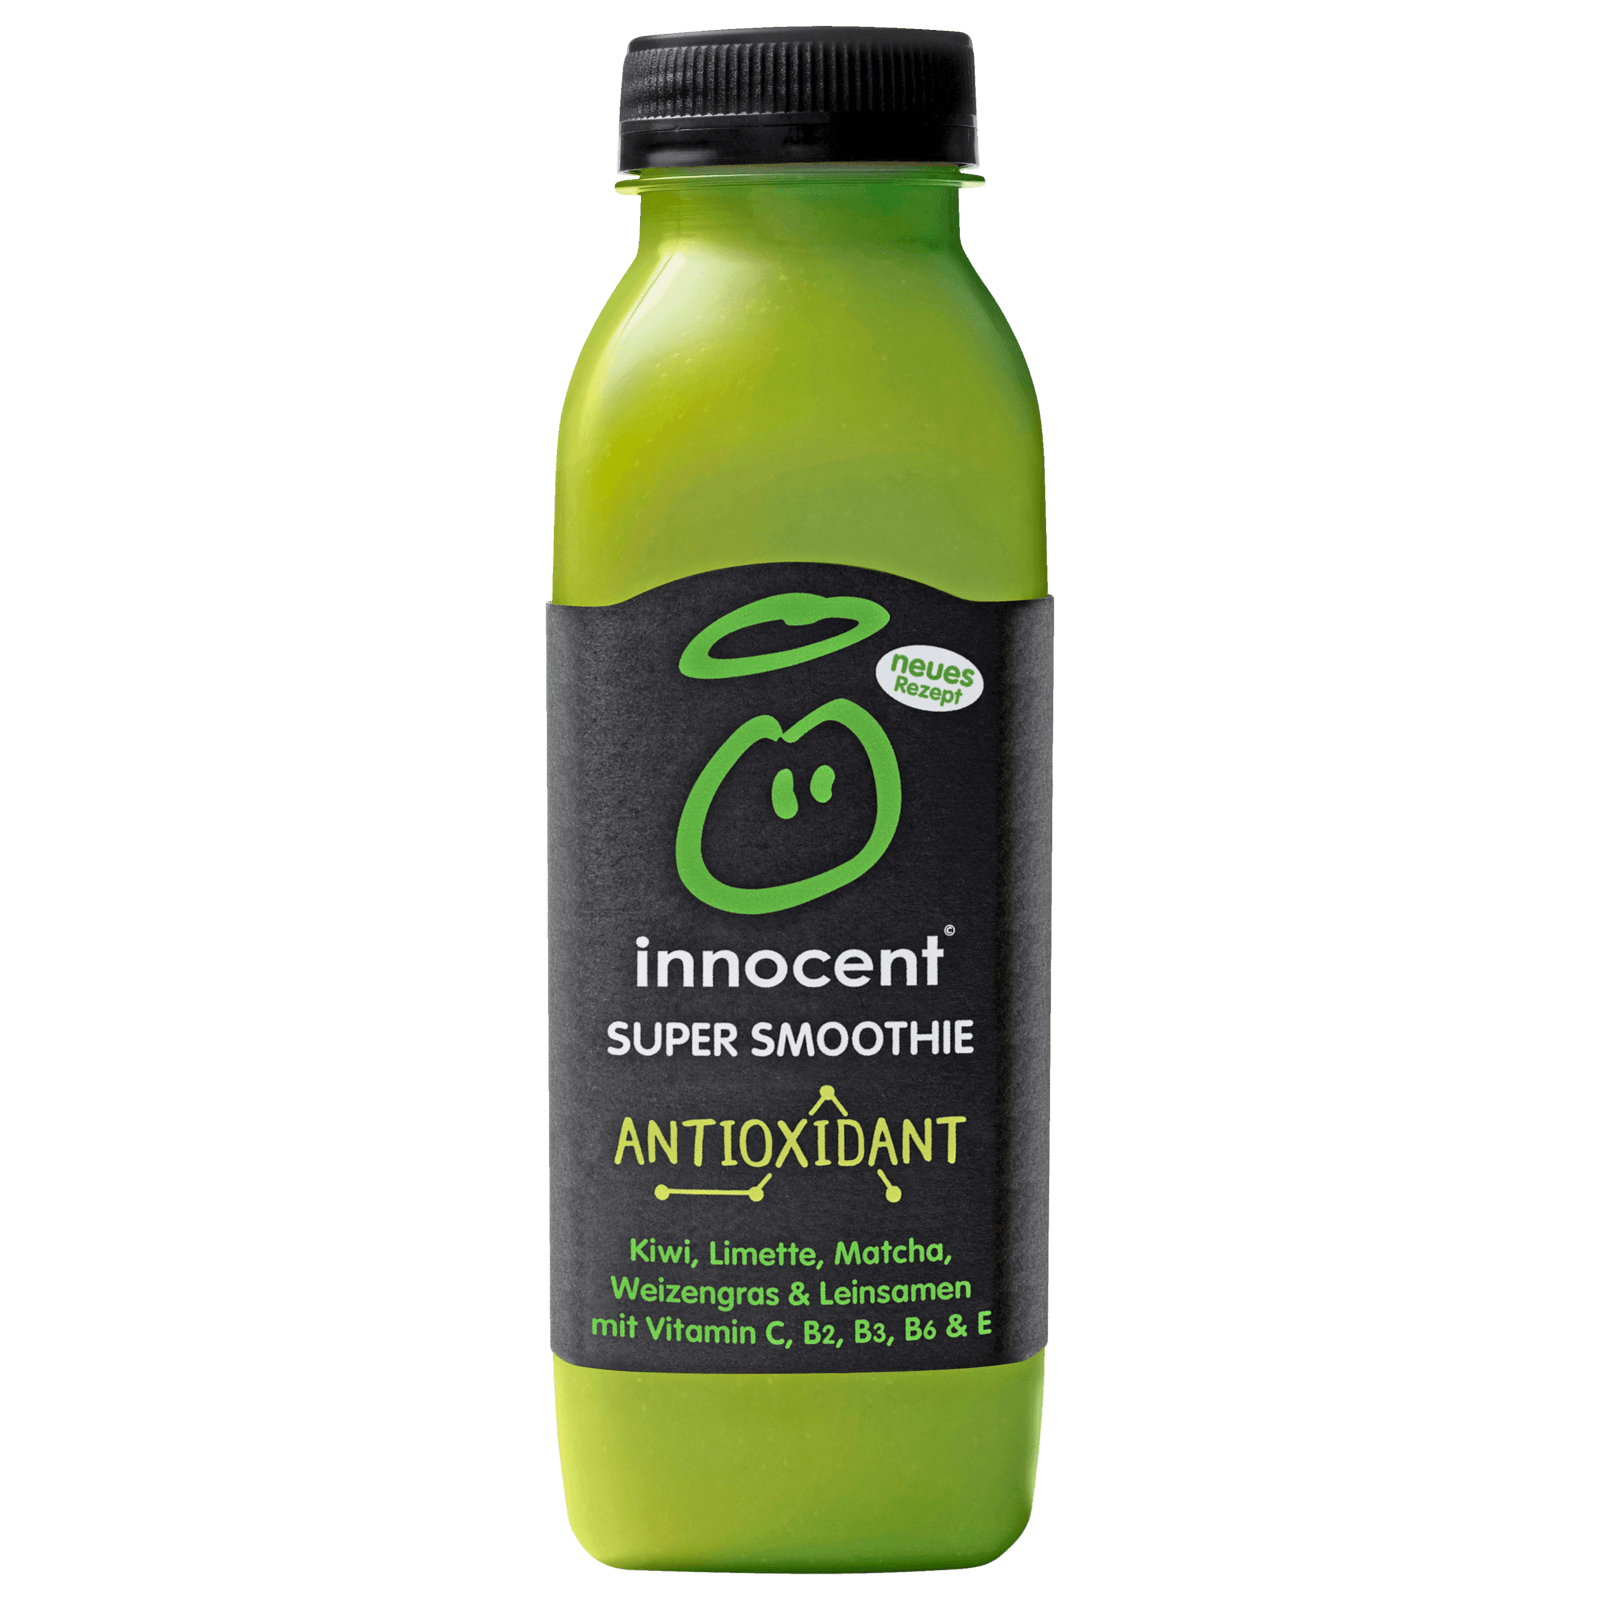 Innocent Antioxidant Super Smoothie 360ml